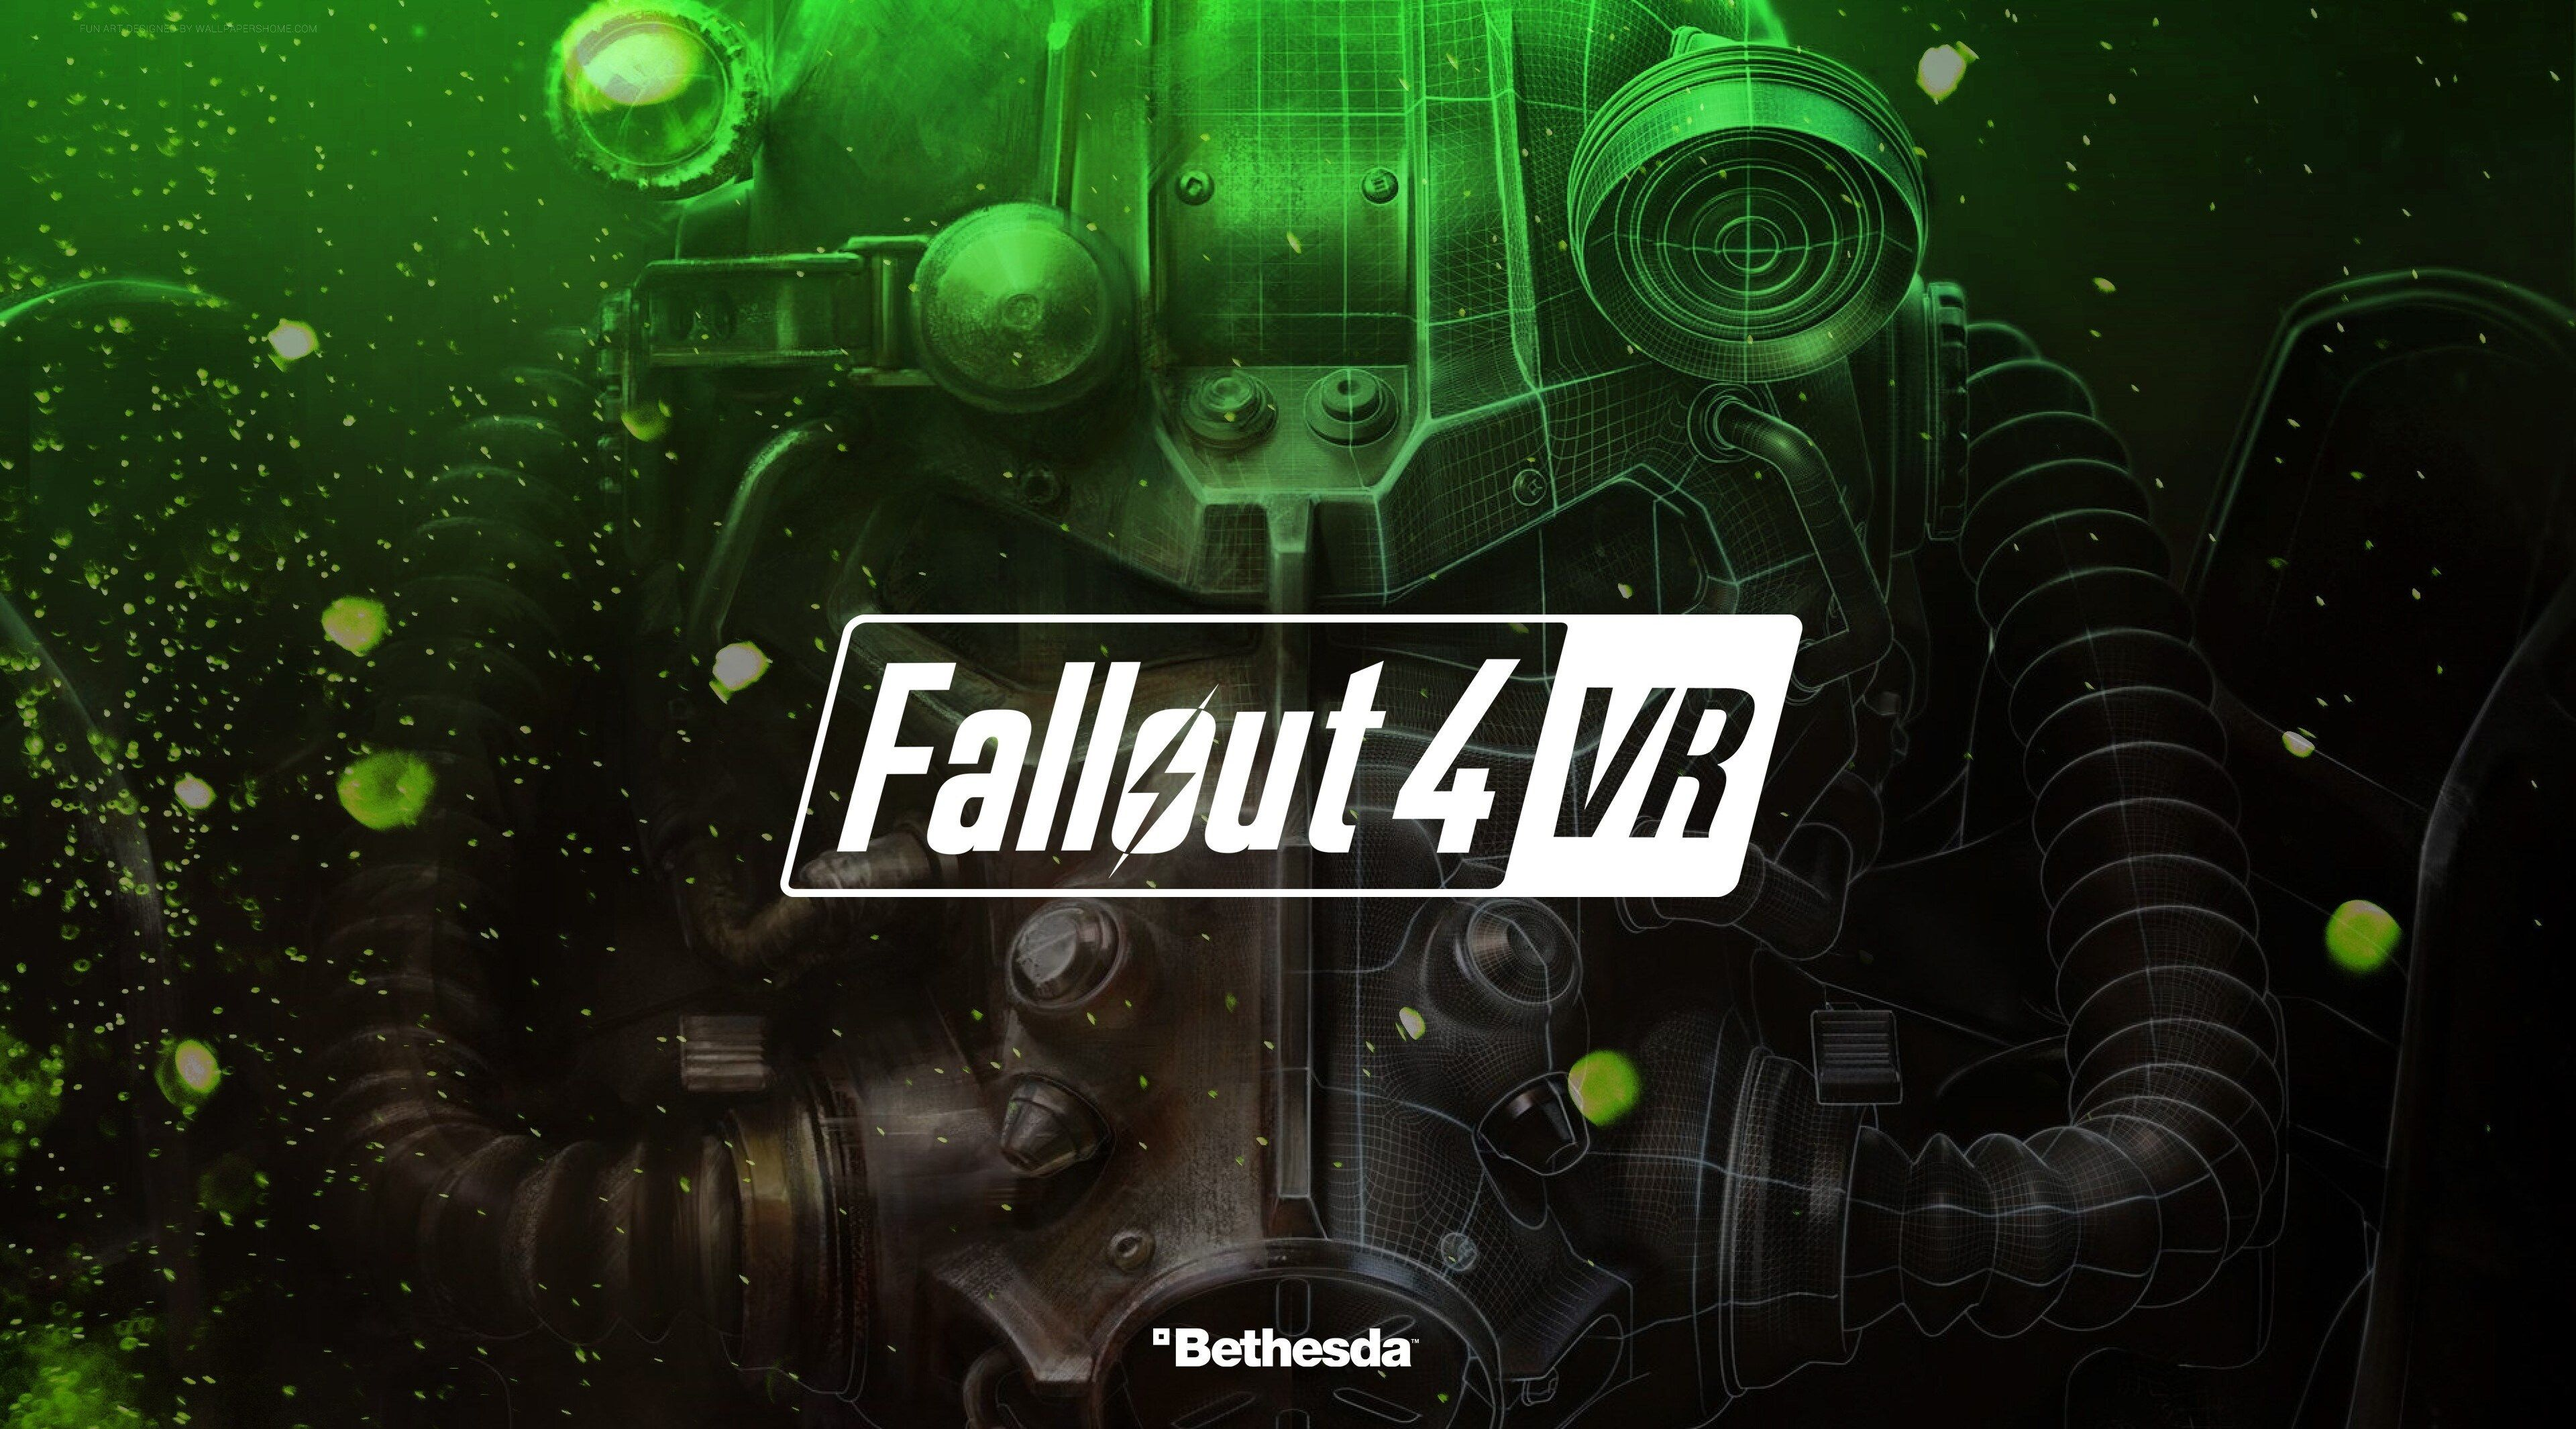 3840x2130 Fallout 4 Vr 4k Mac Background Wallpaper In 2020 Fallout Gaming Wallpapers Fallout Ps4